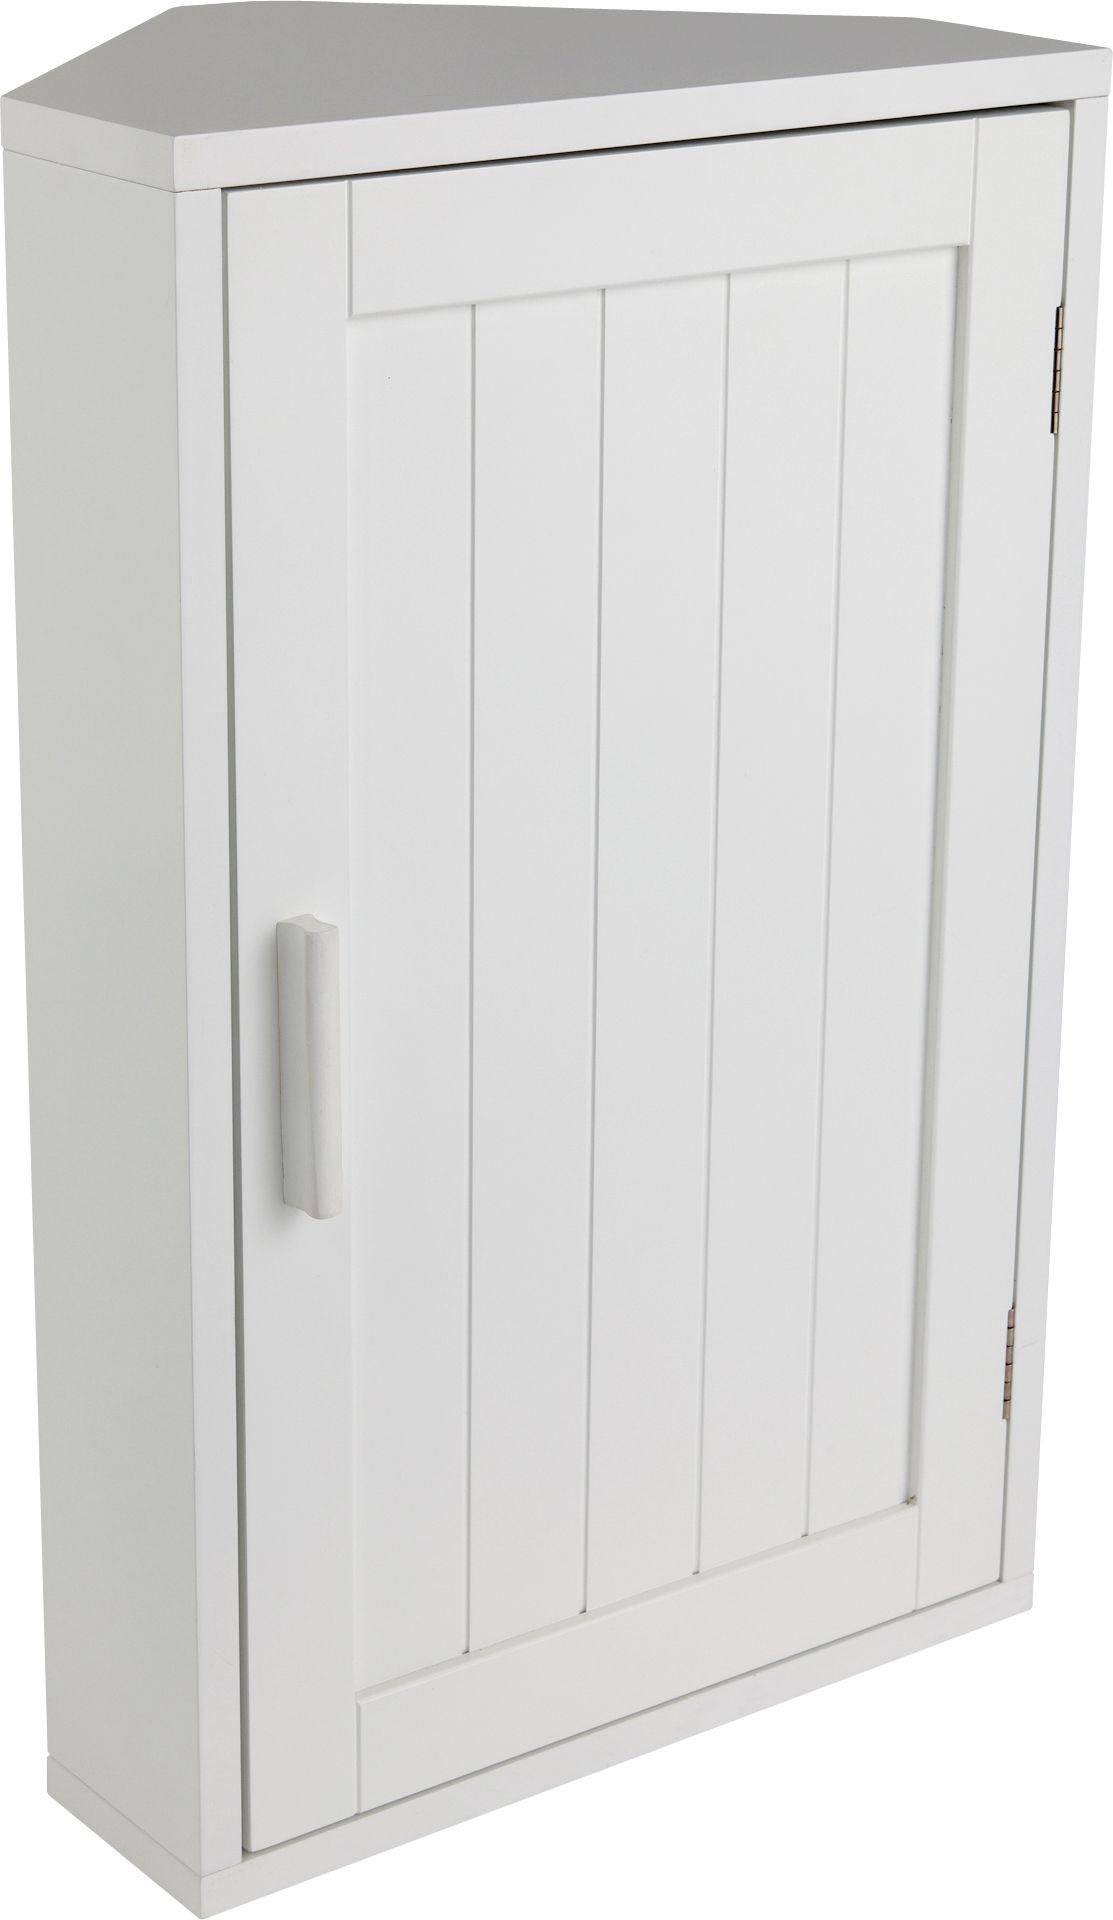 buy home wooden corner bathroom cabinet - white at argos.co.uk